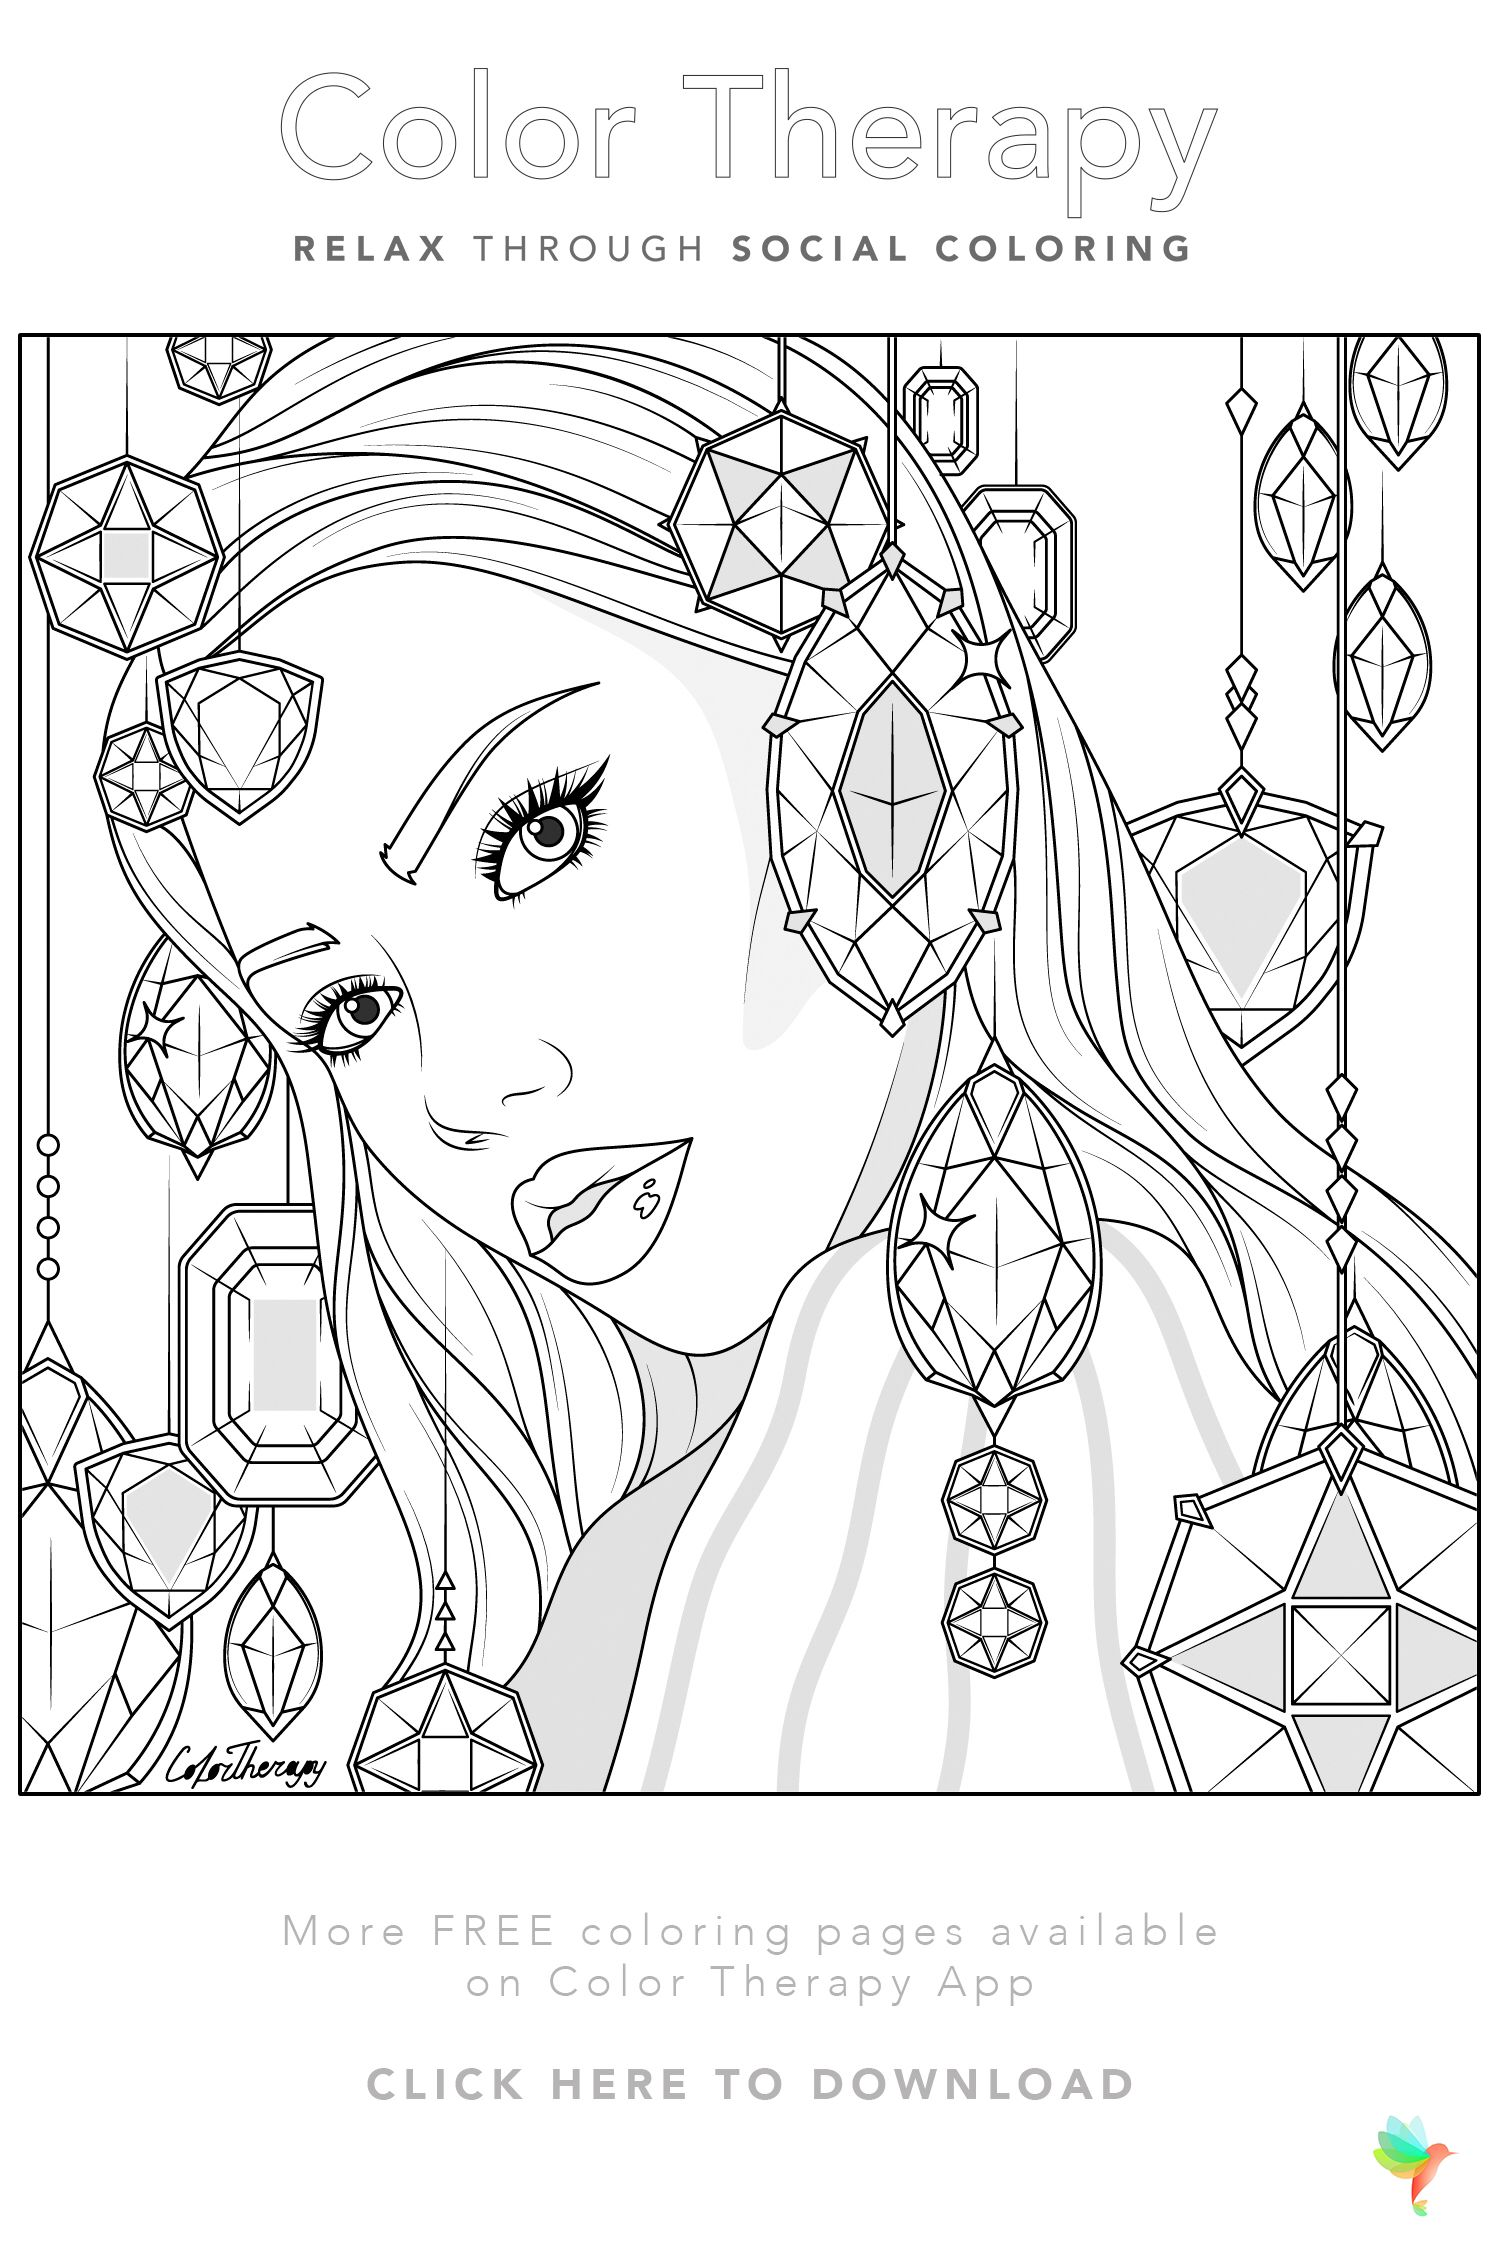 Color Therapy Gift Of The Day Free Coloring Template Horse Coloring Pages People Coloring Pages Free Coloring Pages